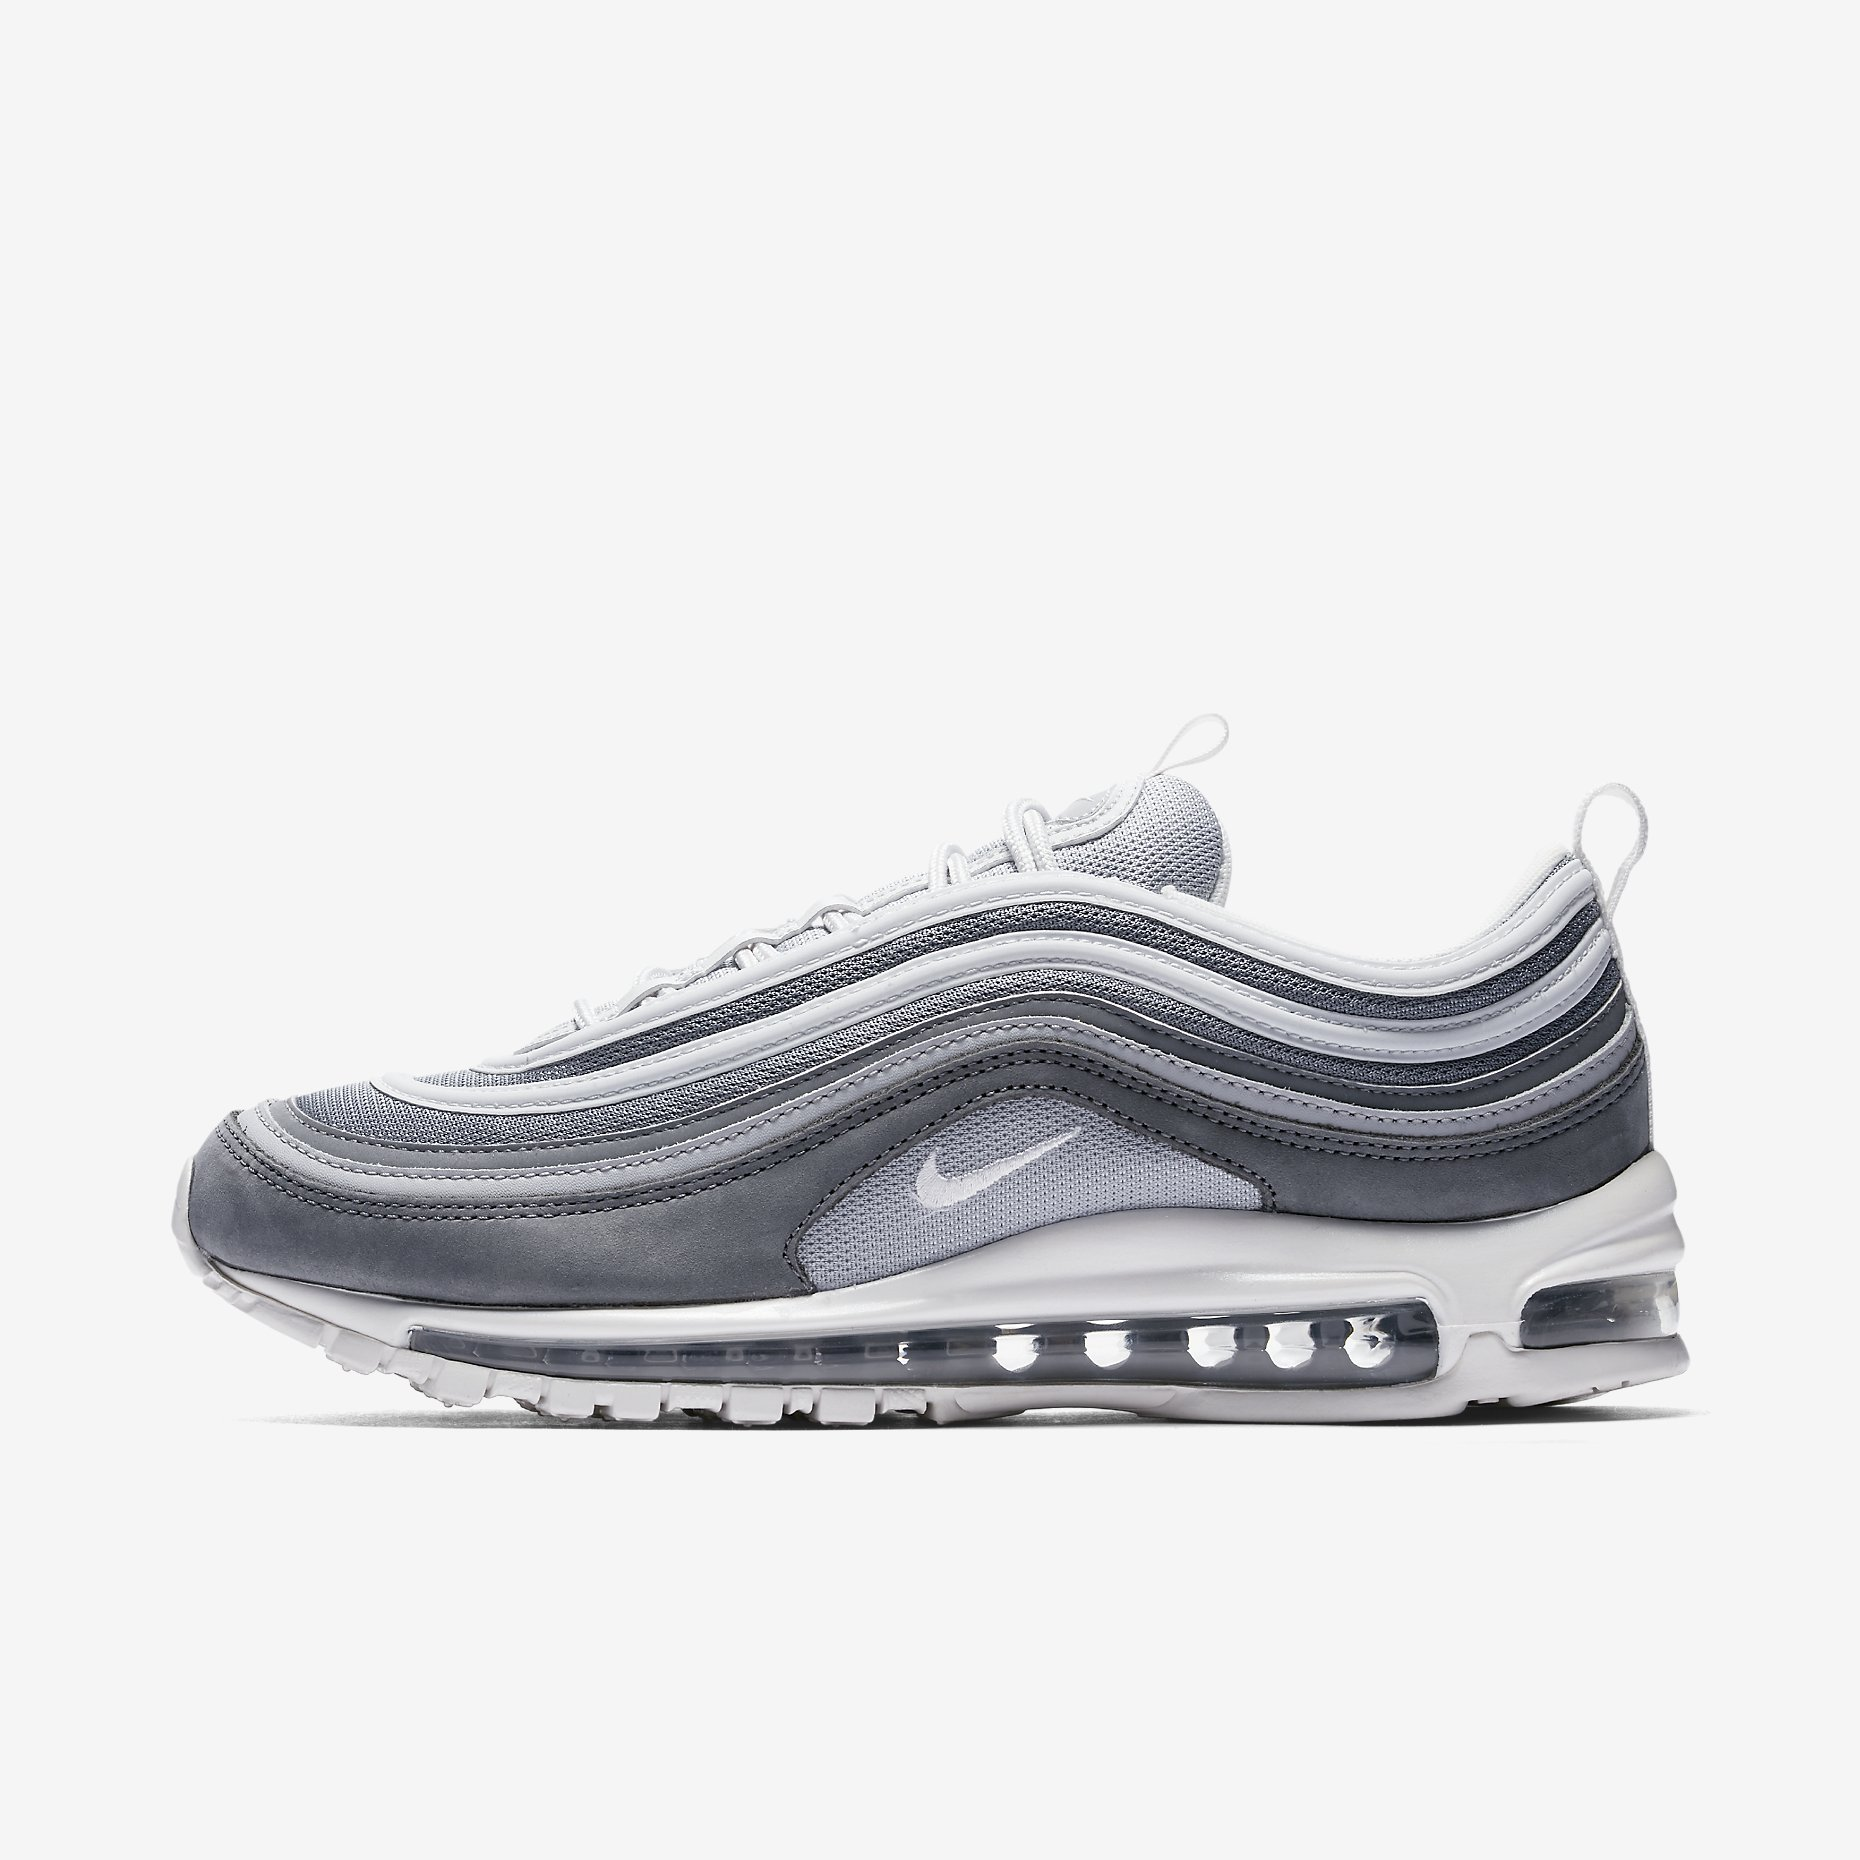 Nike Air Max 97 OG Premium Collection